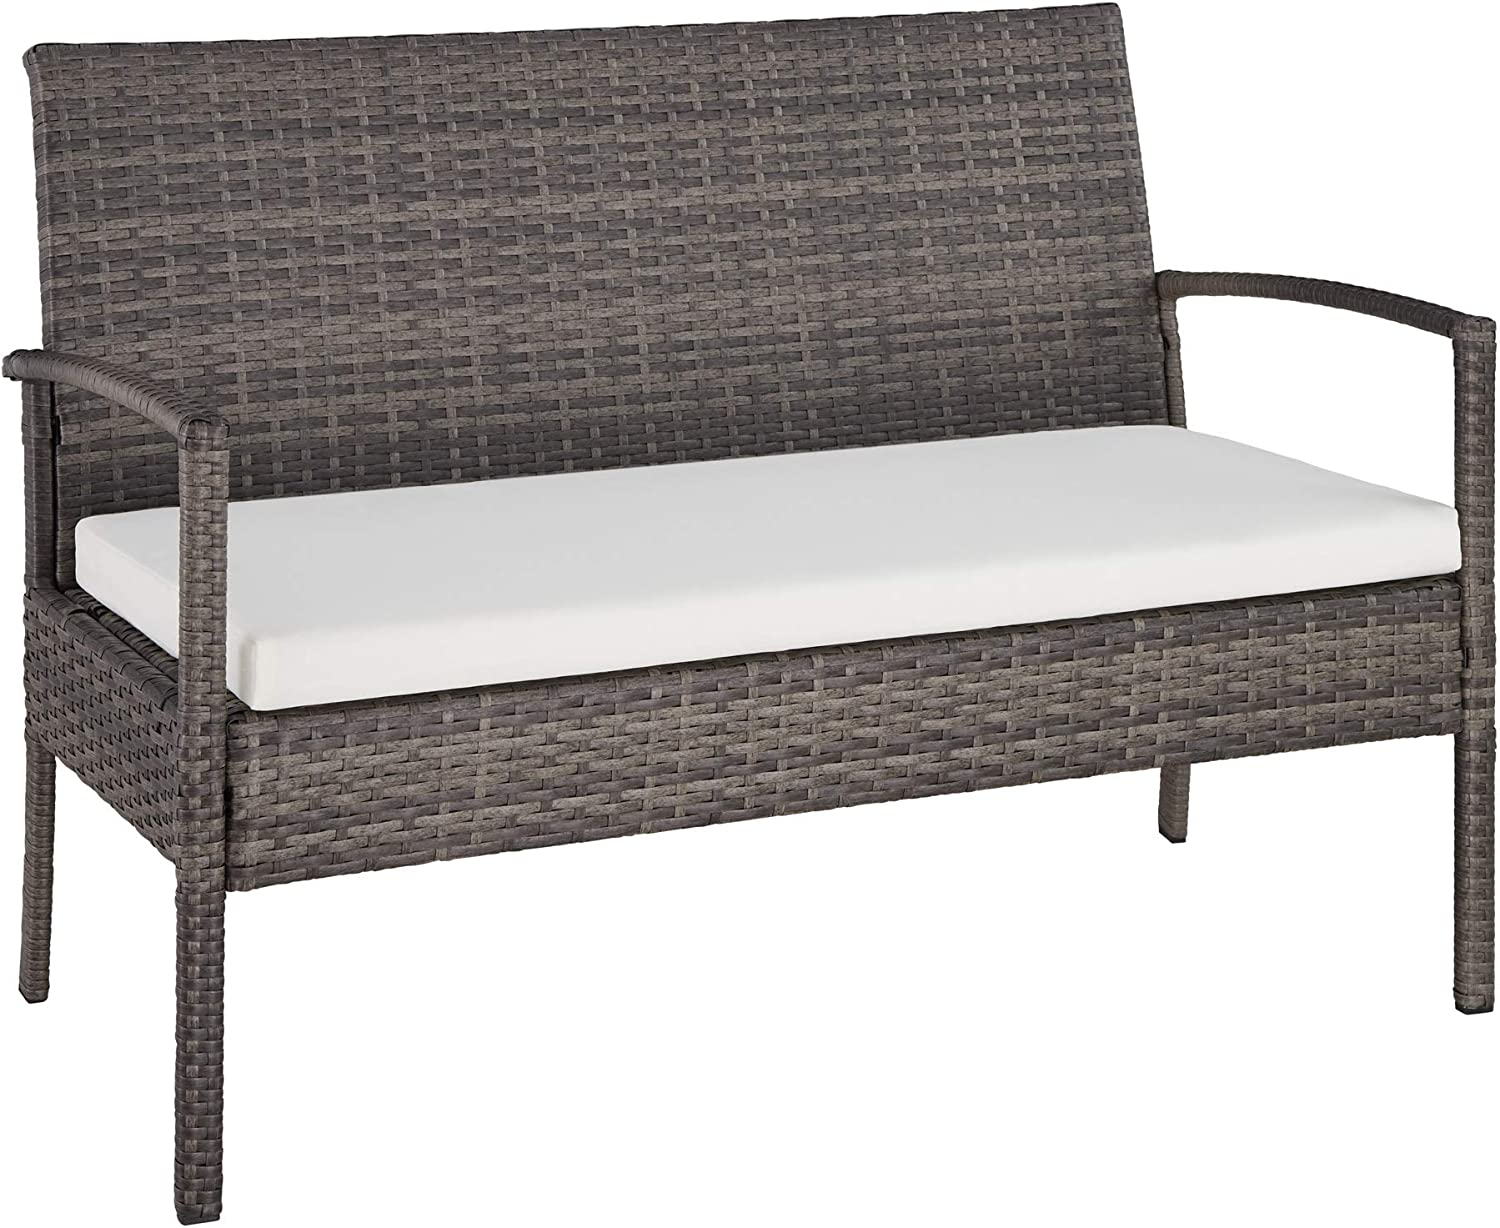 TecTake 403398 Poly Rattan Garden Furniture Grey Cushions Wicker Set with Glass Table,Terrace Lounge Outdoor incl